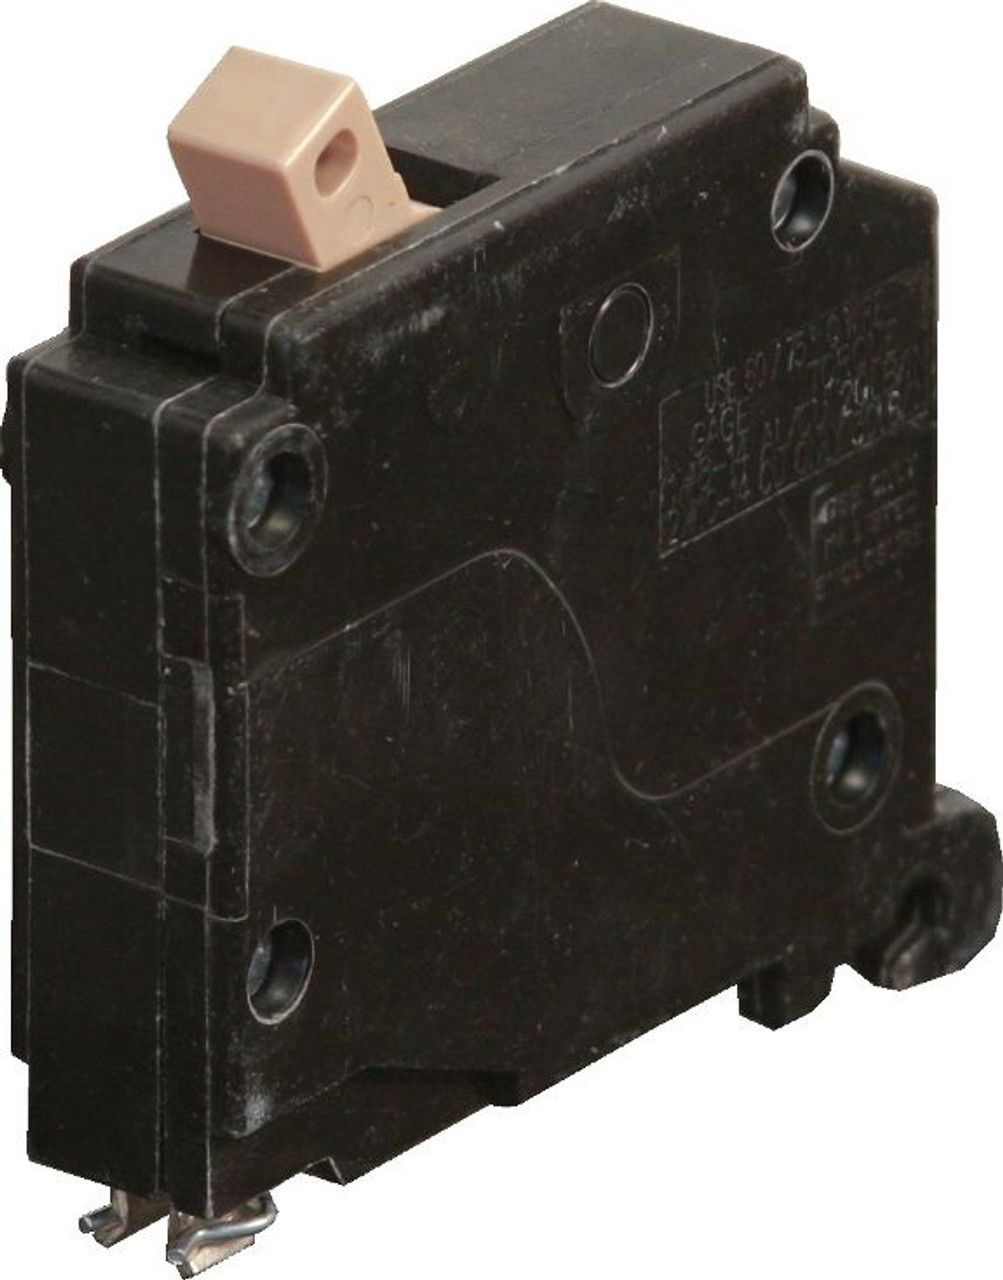 Electrical Breakers CH150 CH Plug-In Cutler-Hammer from Breaker Outlet